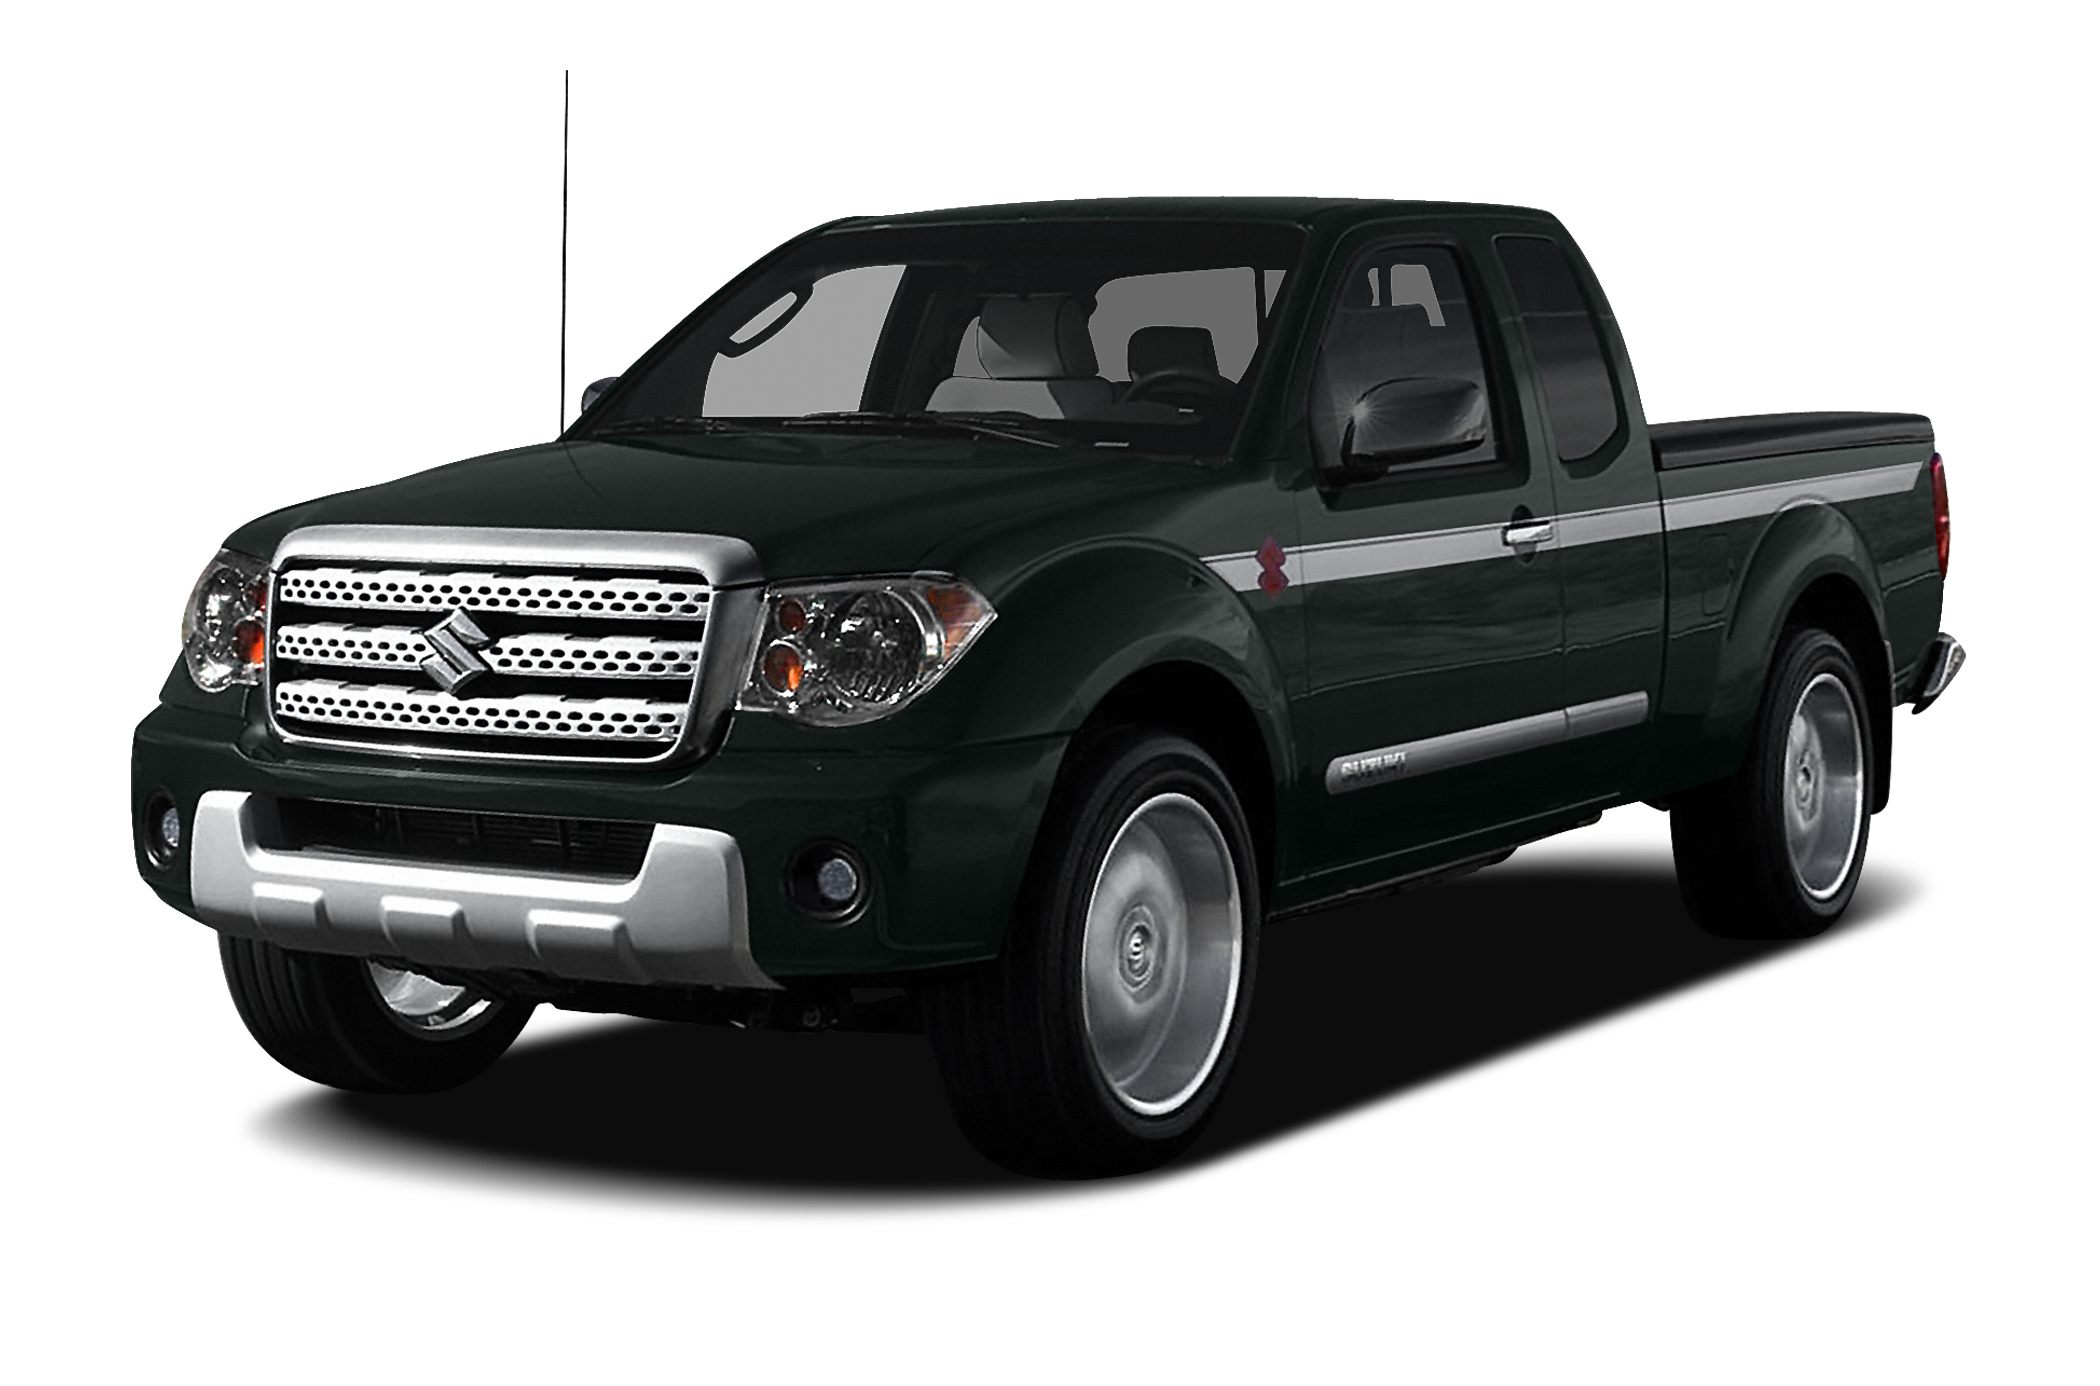 2011 Suzuki Equator Sport Extended Cab Pickup for sale in Pottsville for $13,478 with 108,777 miles.